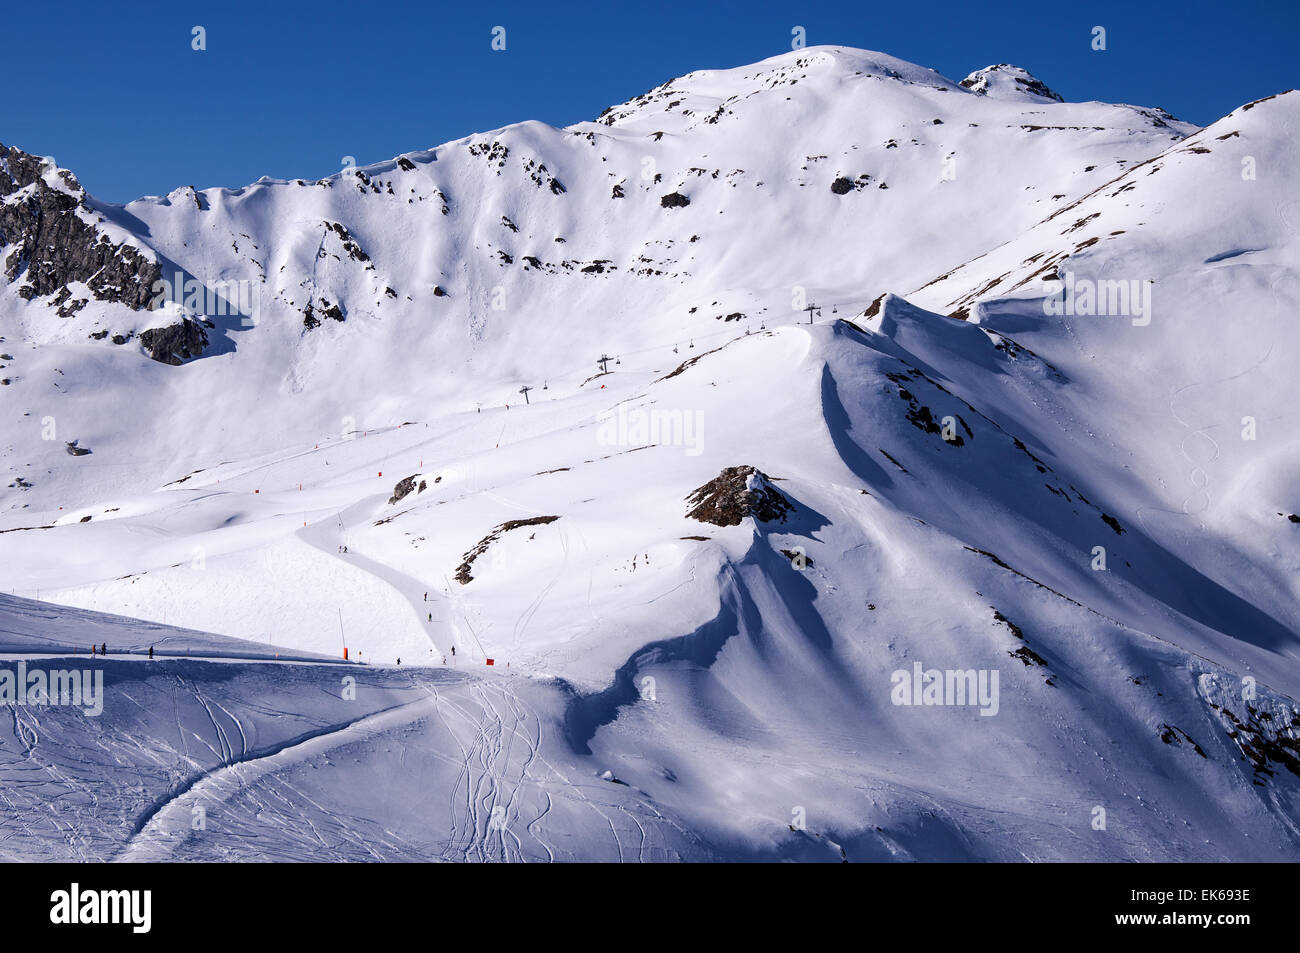 Ski pistes and a chairlift in Mayrhofen ski resort in Zillertal Alps in Tirol, Austria - Stock Image